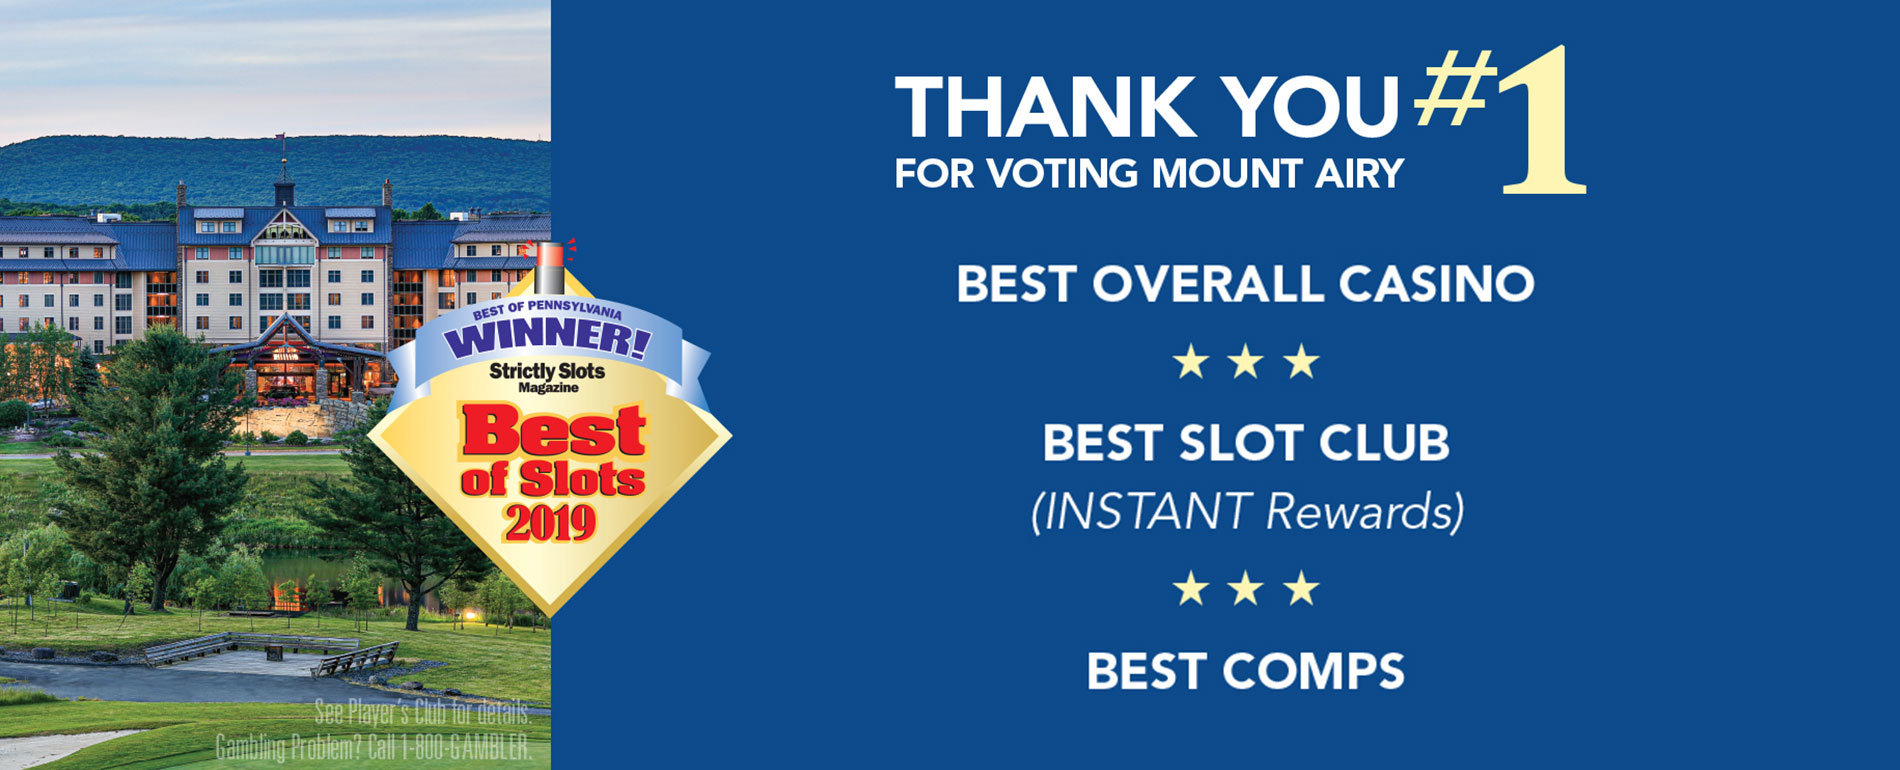 pocono best of slots 2019 award winner